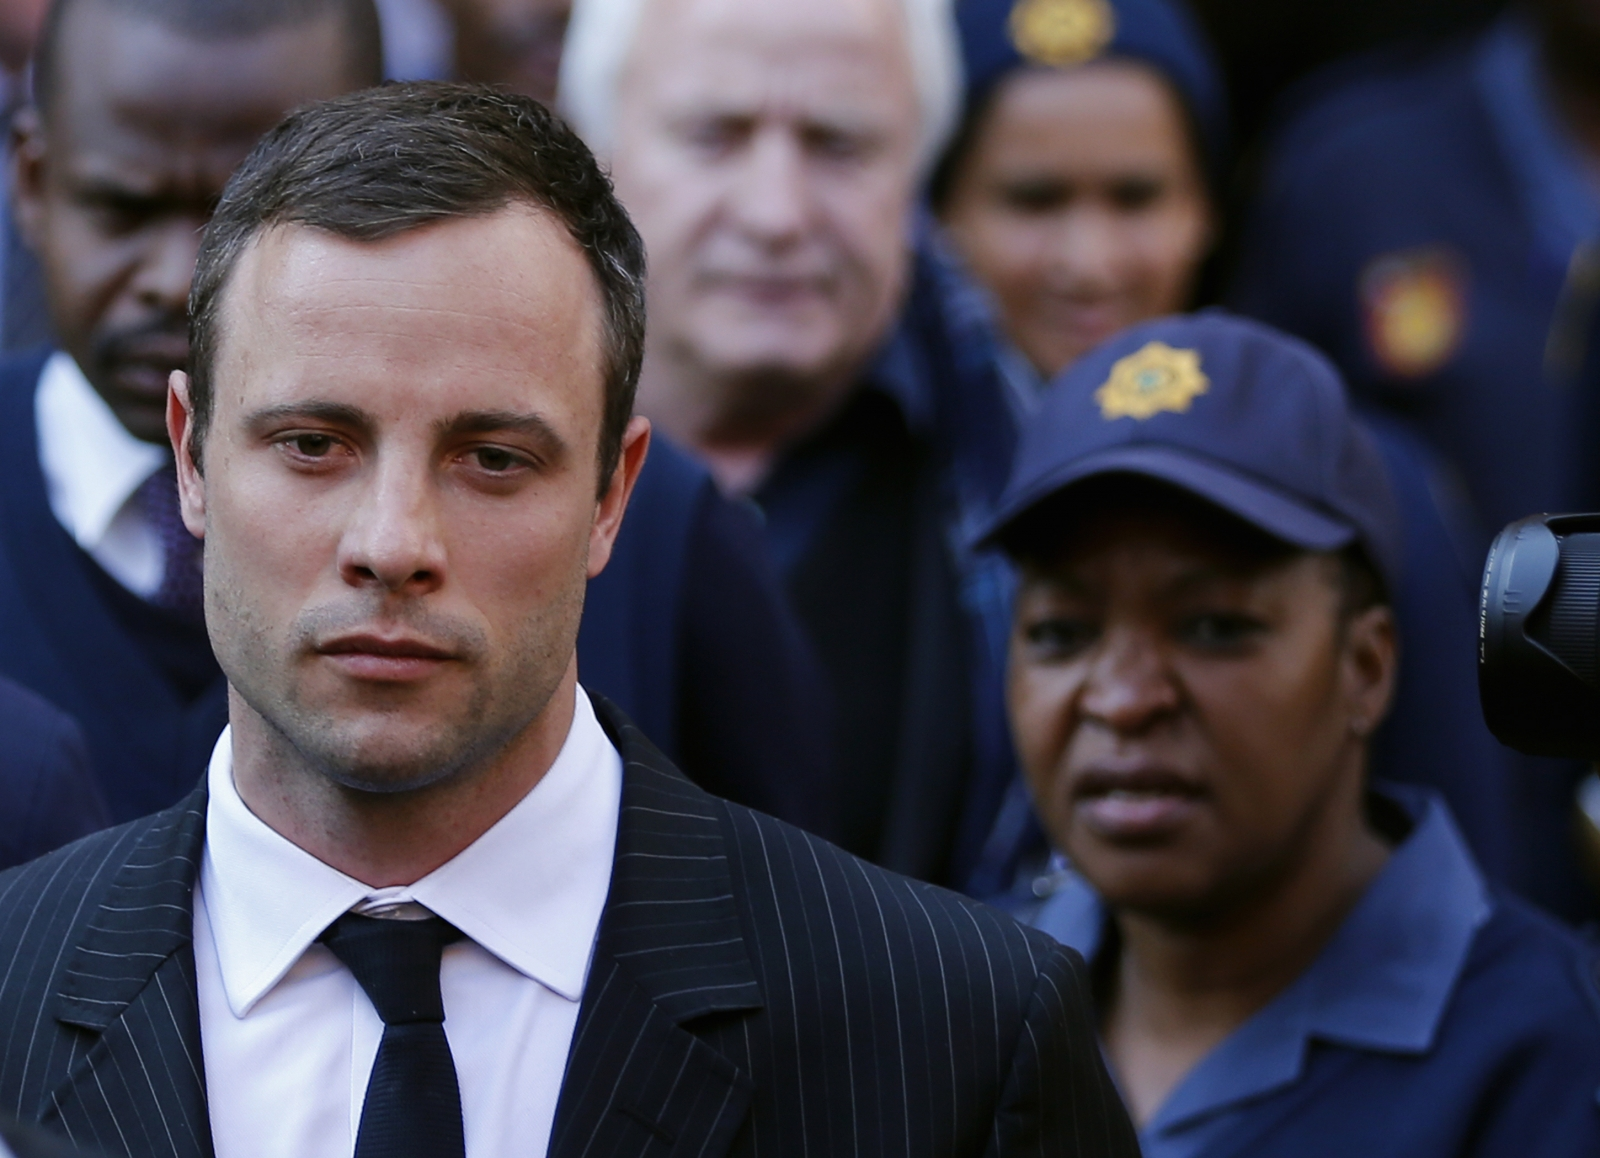 Oscar Pistorius looks to be feeling the weight of Judgement day